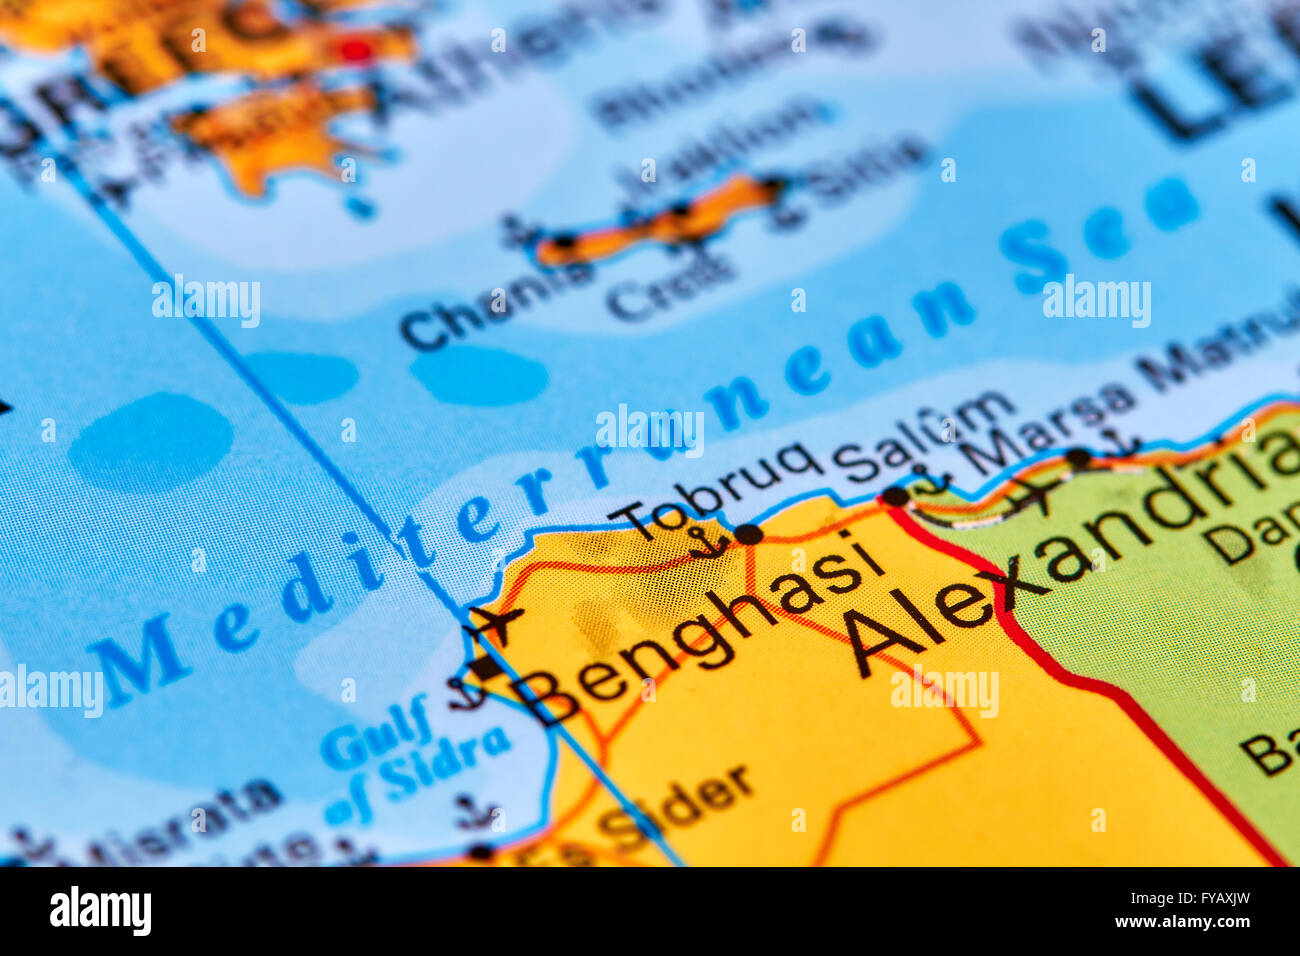 Map of mediterranean sea stock photos map of mediterranean sea the mediterranean sea europe on the world map stock image gumiabroncs Image collections